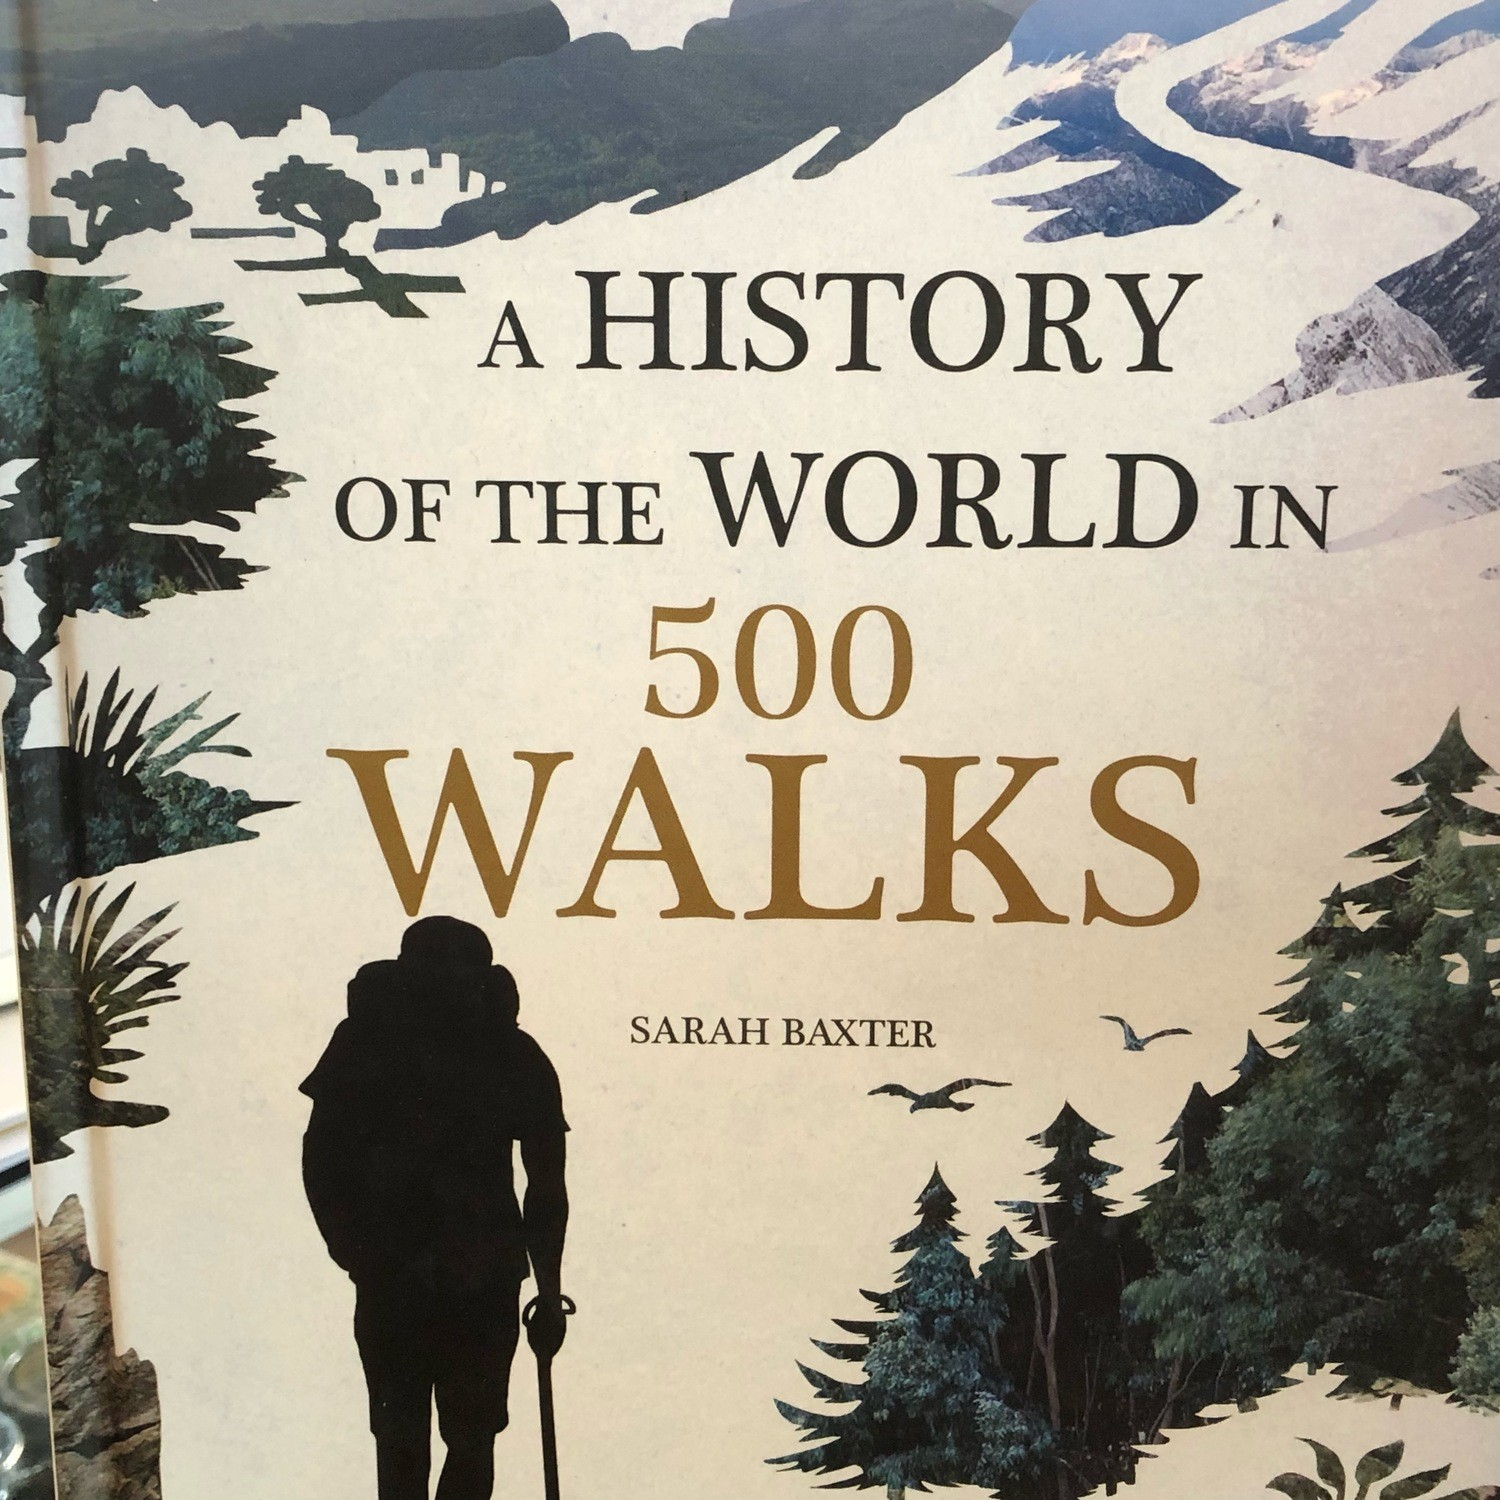 A History Of The World In 500 Walks Sarah Baxter